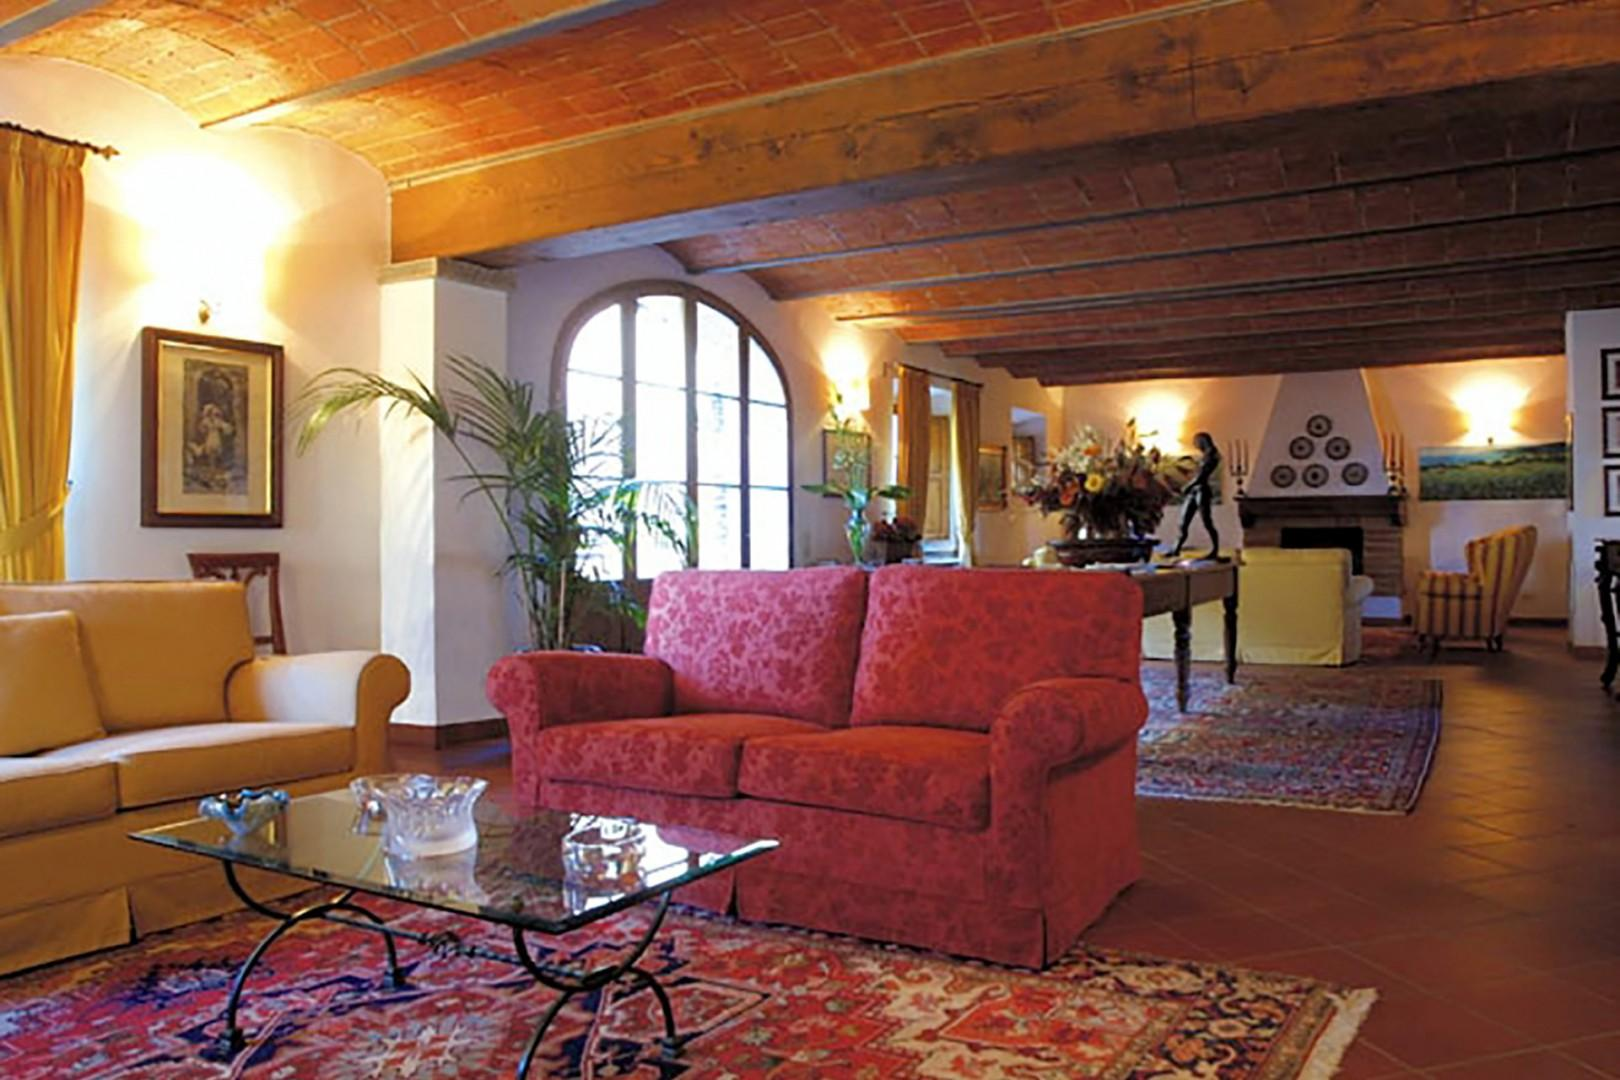 In the reception area there is a comfortable living room with a WiFi access point.